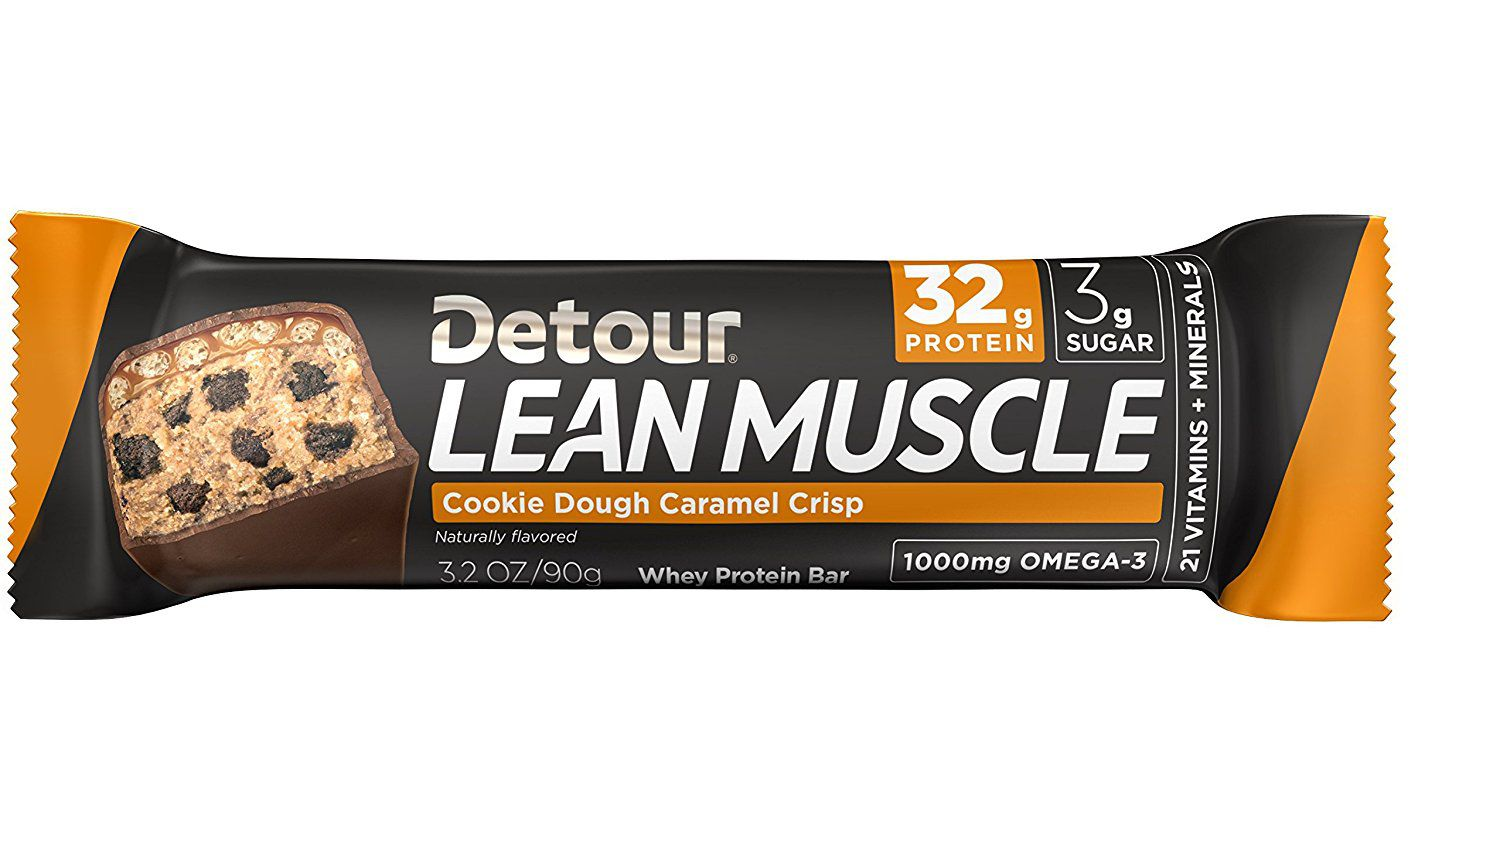 Best Overall Detour Lean Muscle Whey Protein Bar Cookie Dough Caramel Crisp